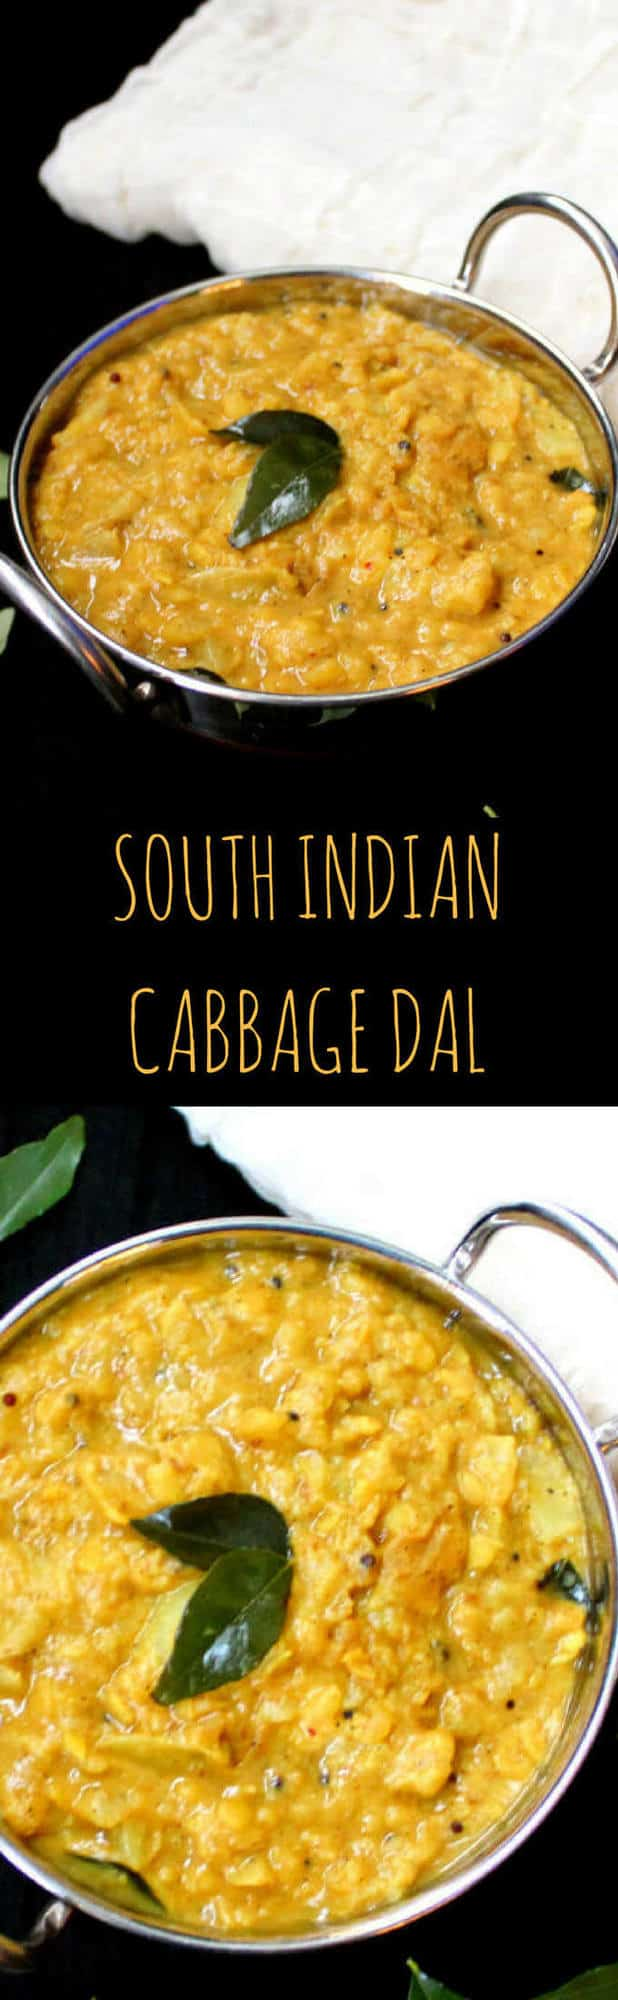 South Indian Cabbage Dal Cabbage Kootu Holy Cow Vegan Recipes